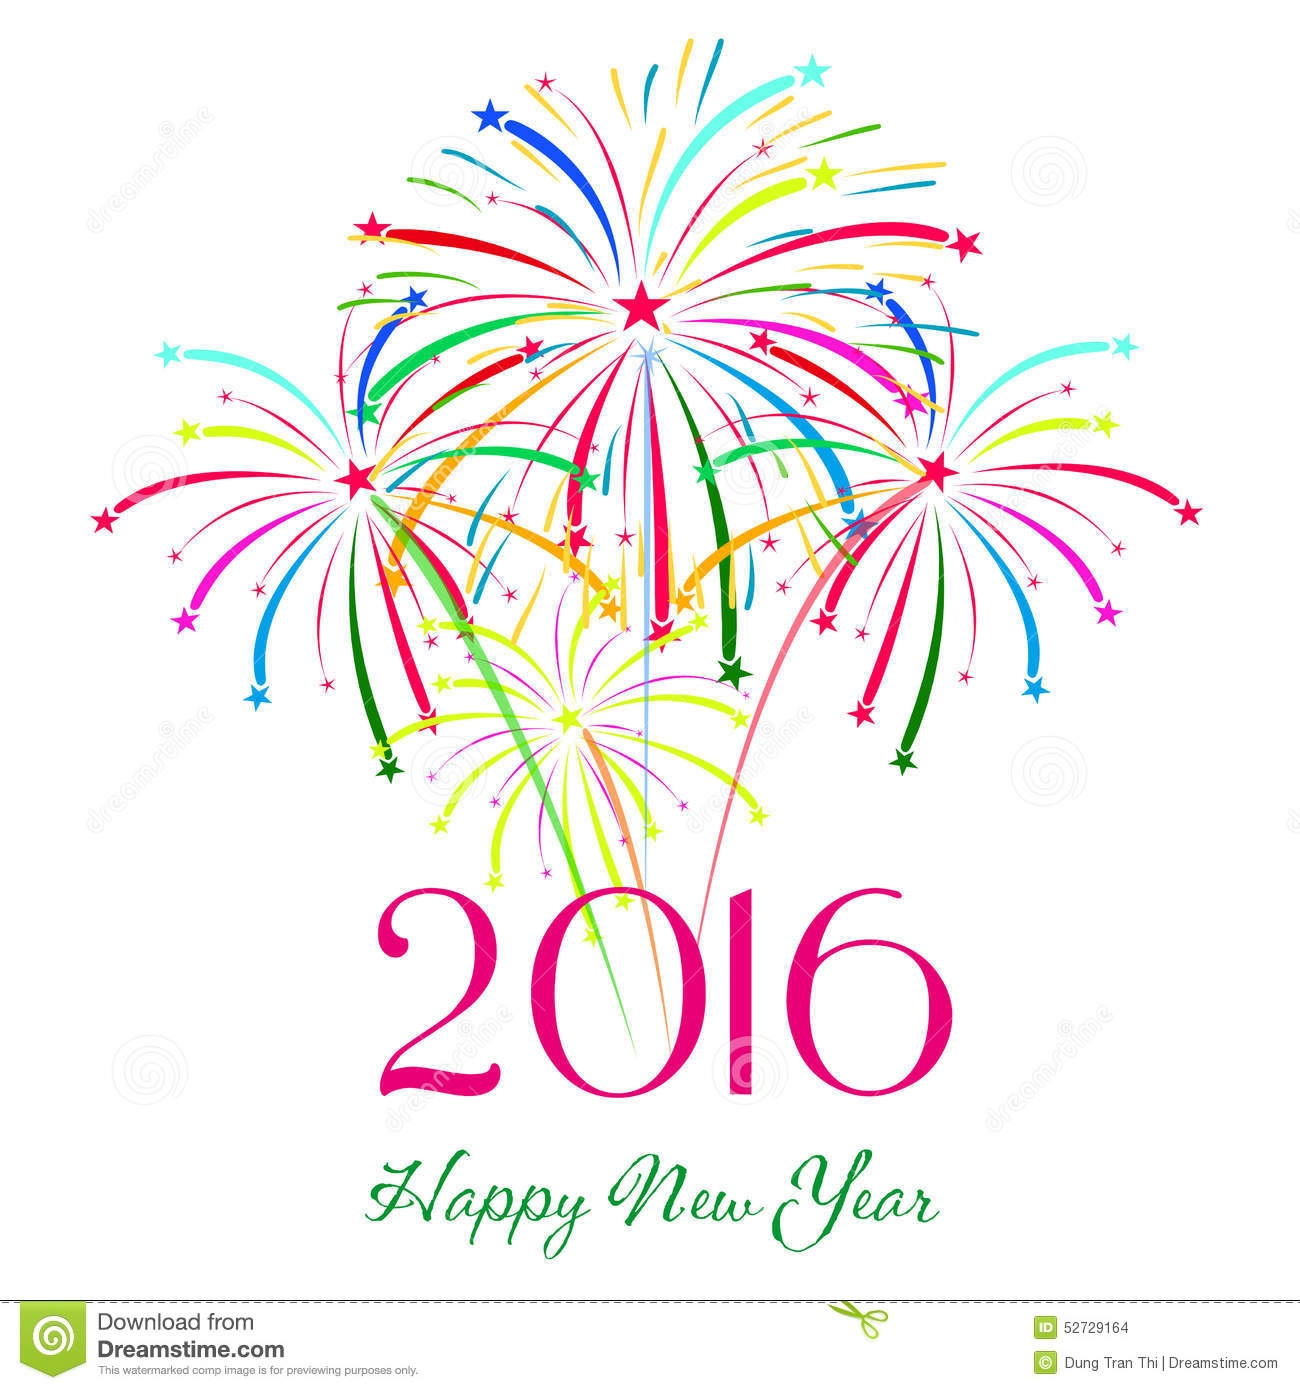 Fireworks New Year 2016 Clip Art.